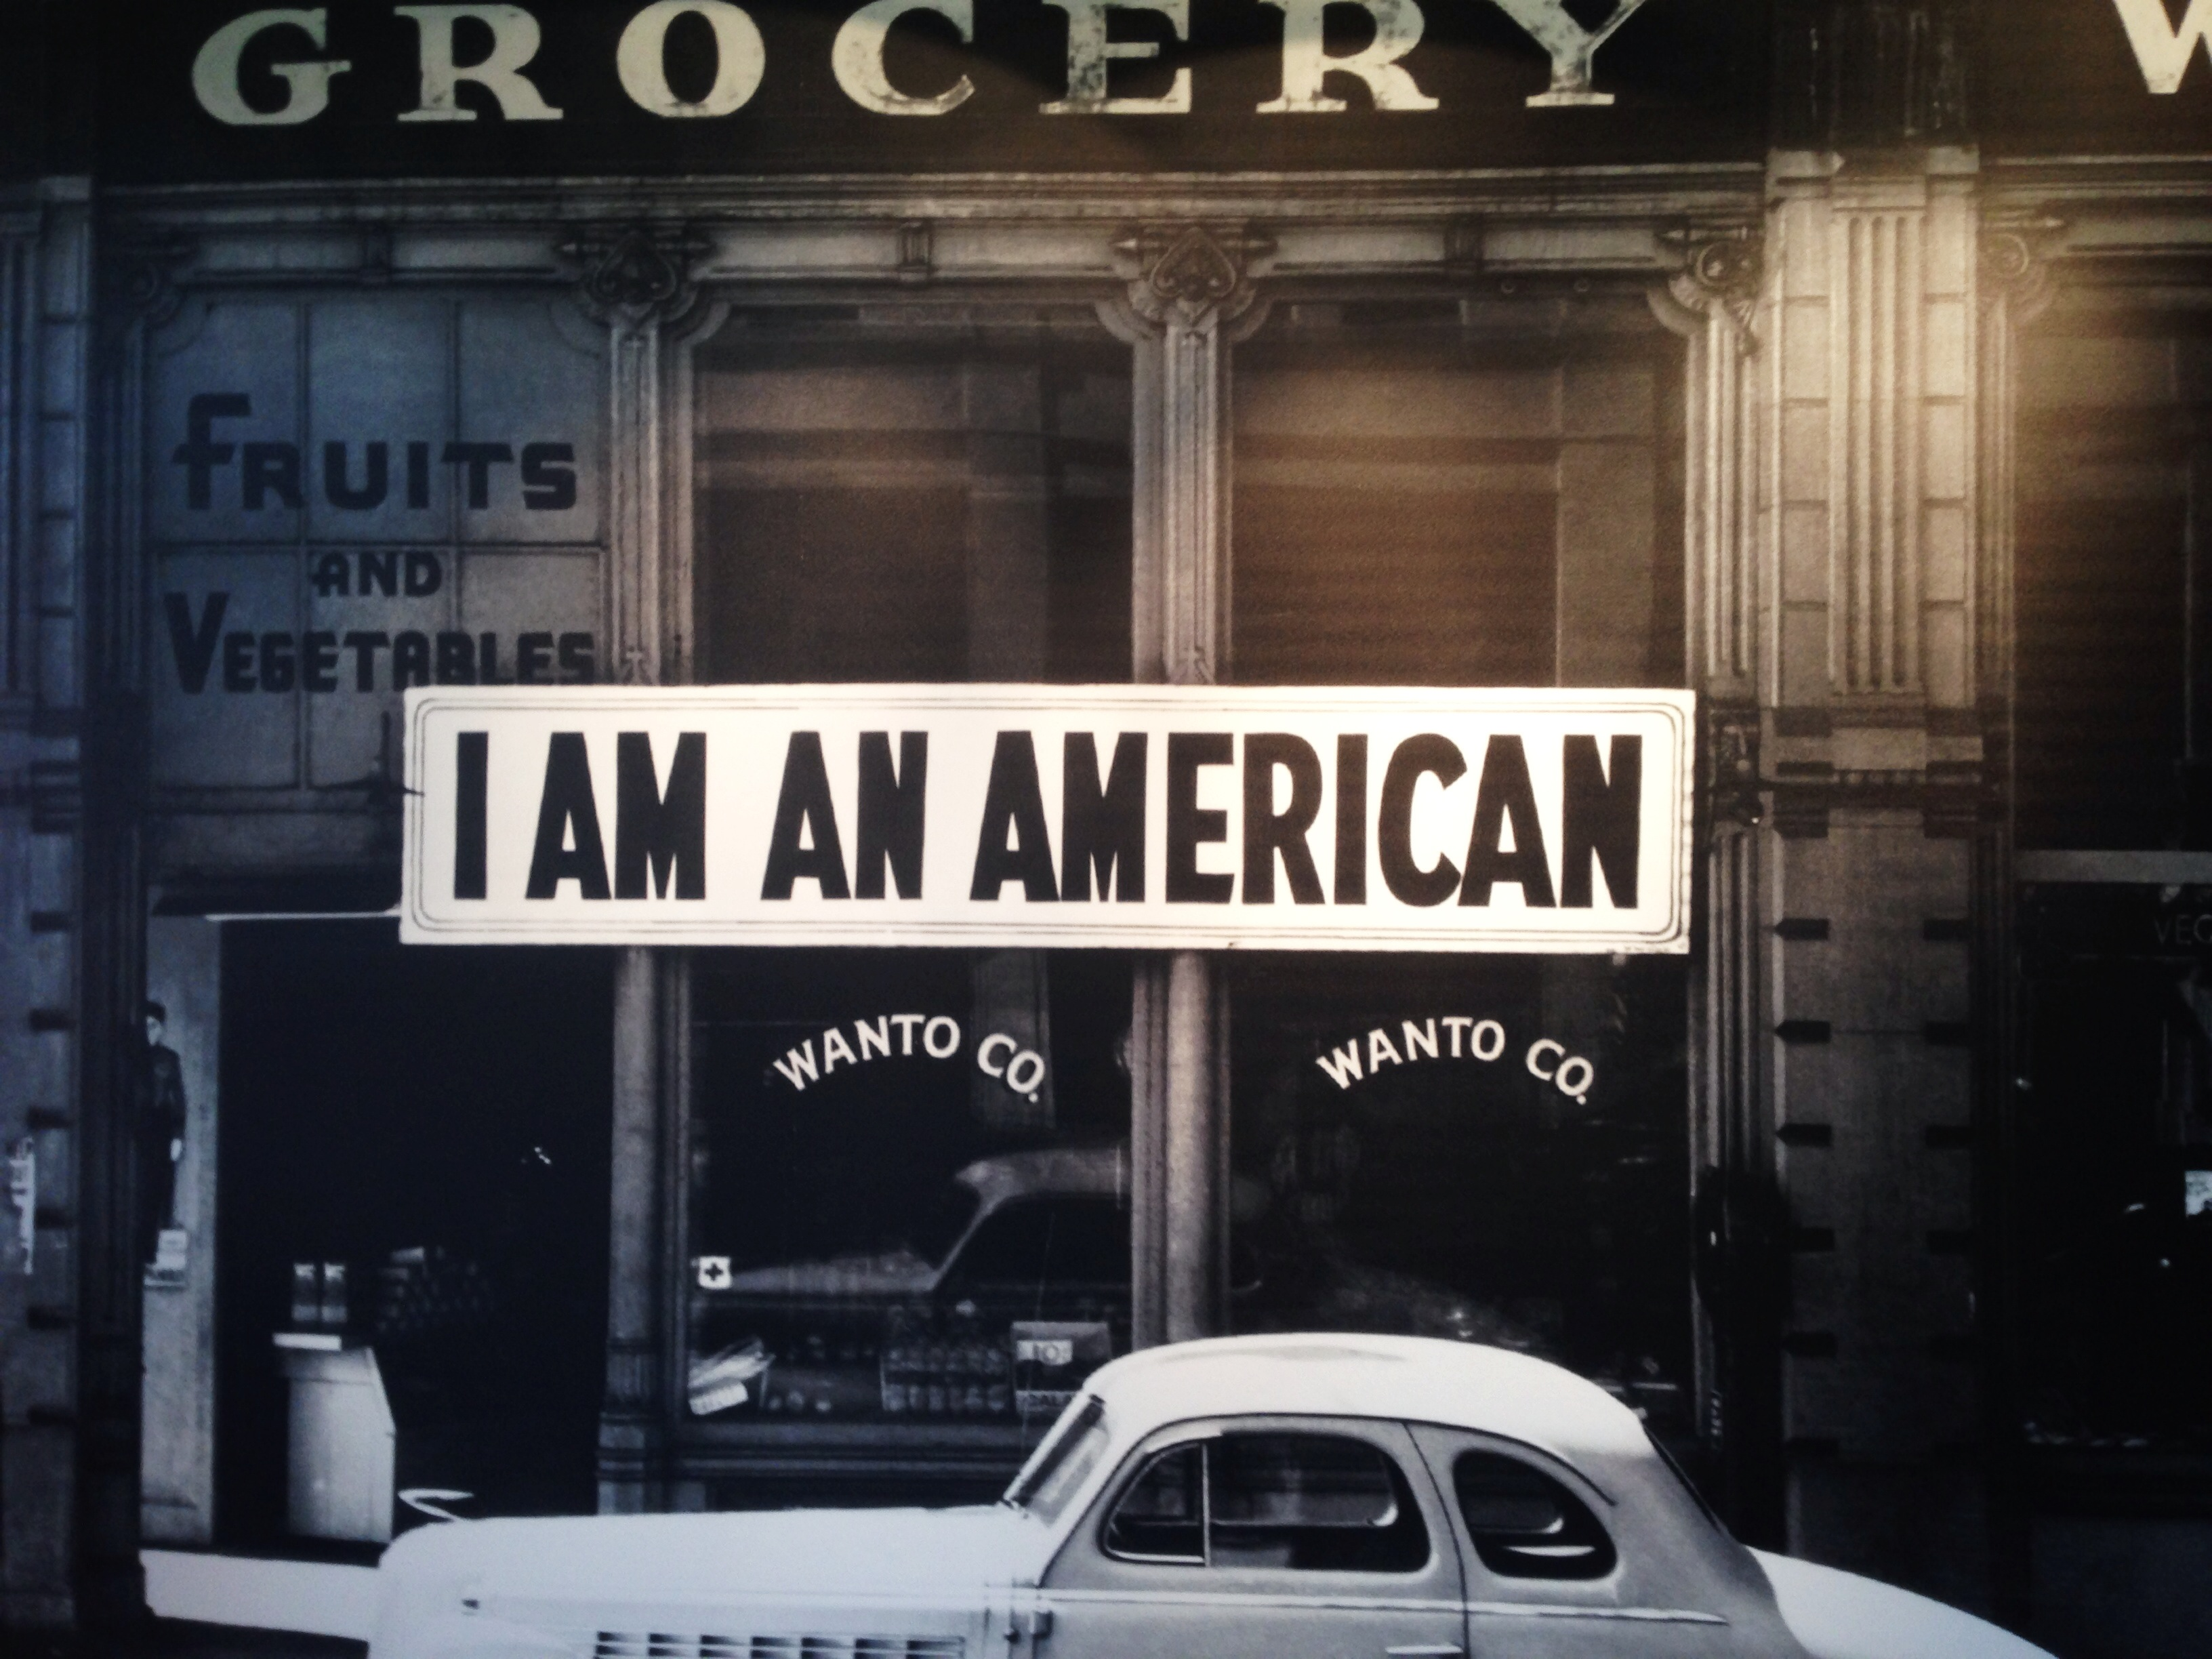 Japanese American grocery sign